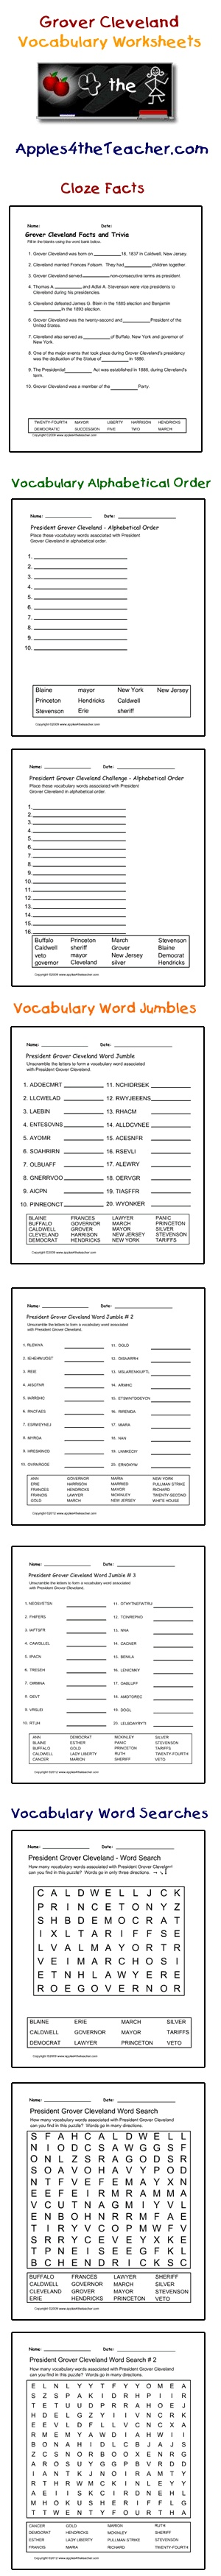 President Grover Cleveland interactive vocabulary words: cloze facts  activity page, alphabetical order worksheets,